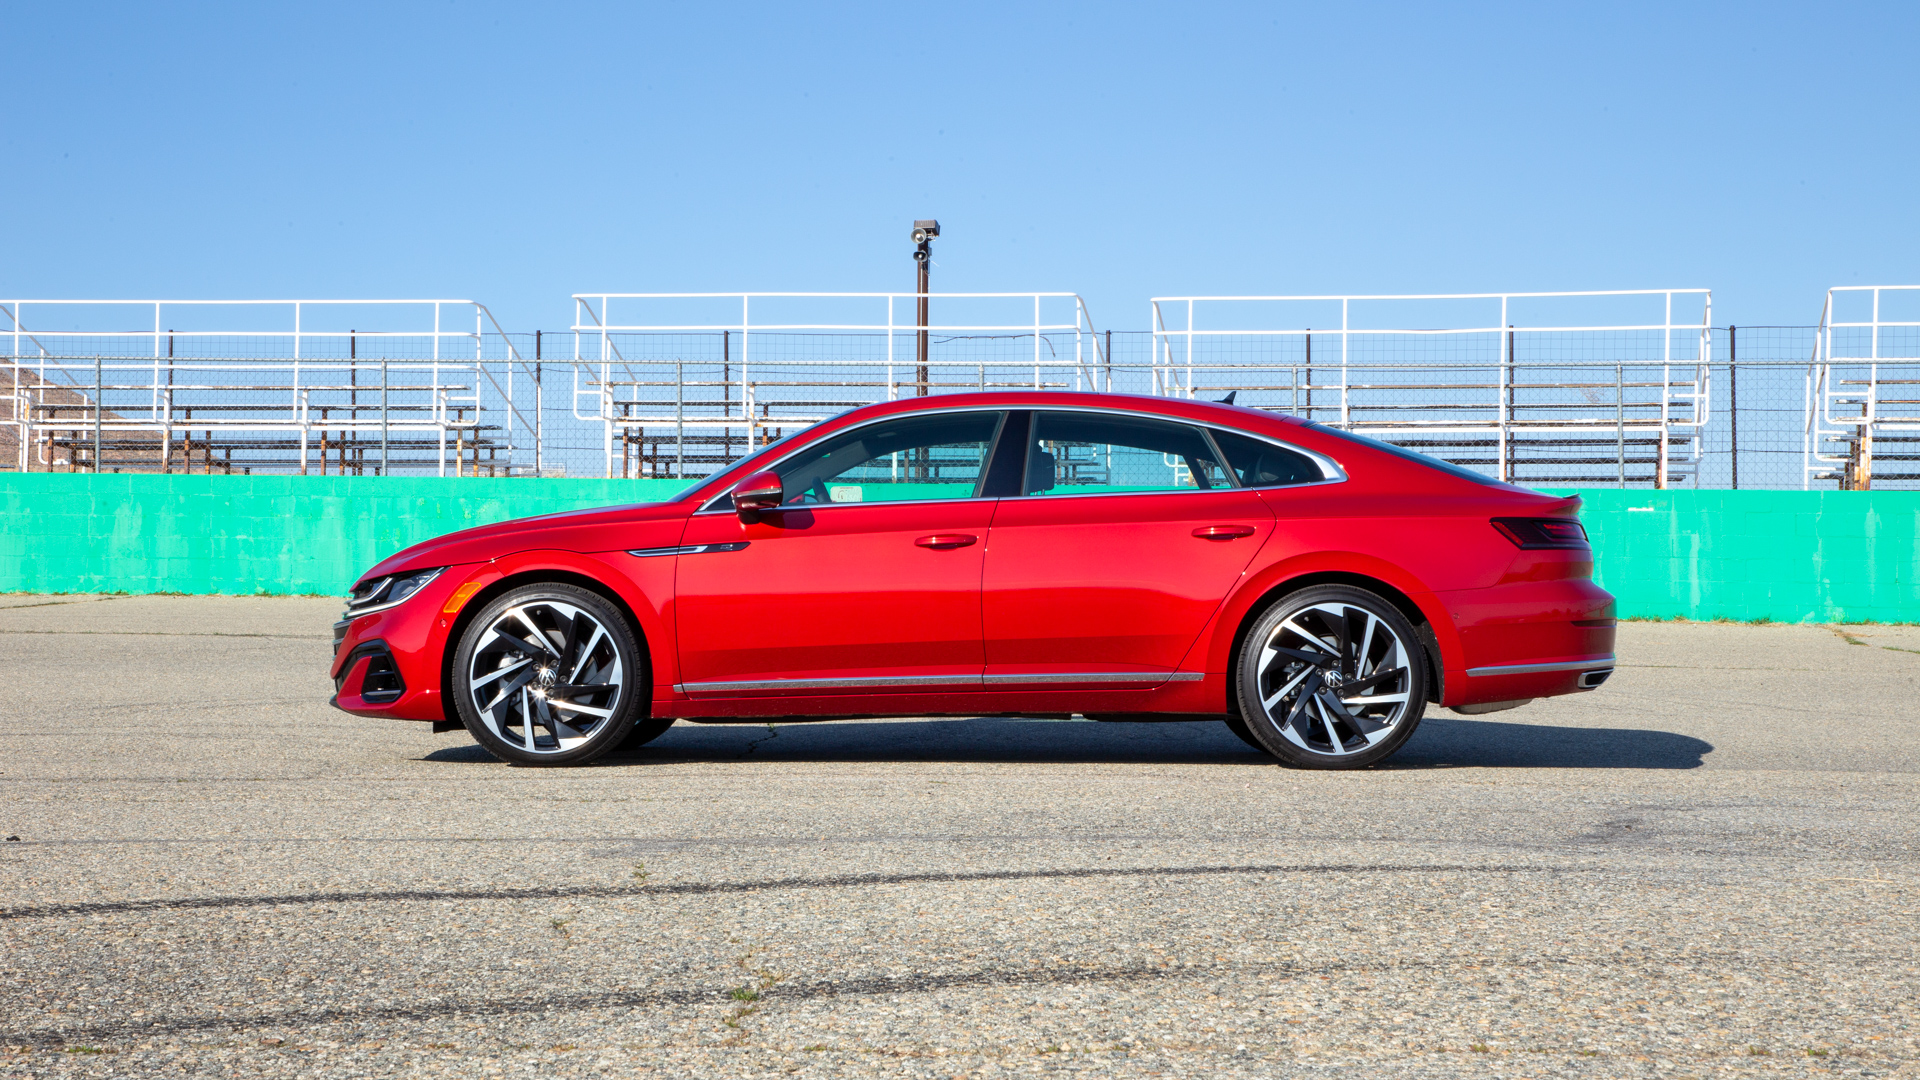 First drive review: 2021 Volkswagen Arteon is an Audi cover band that still rocks